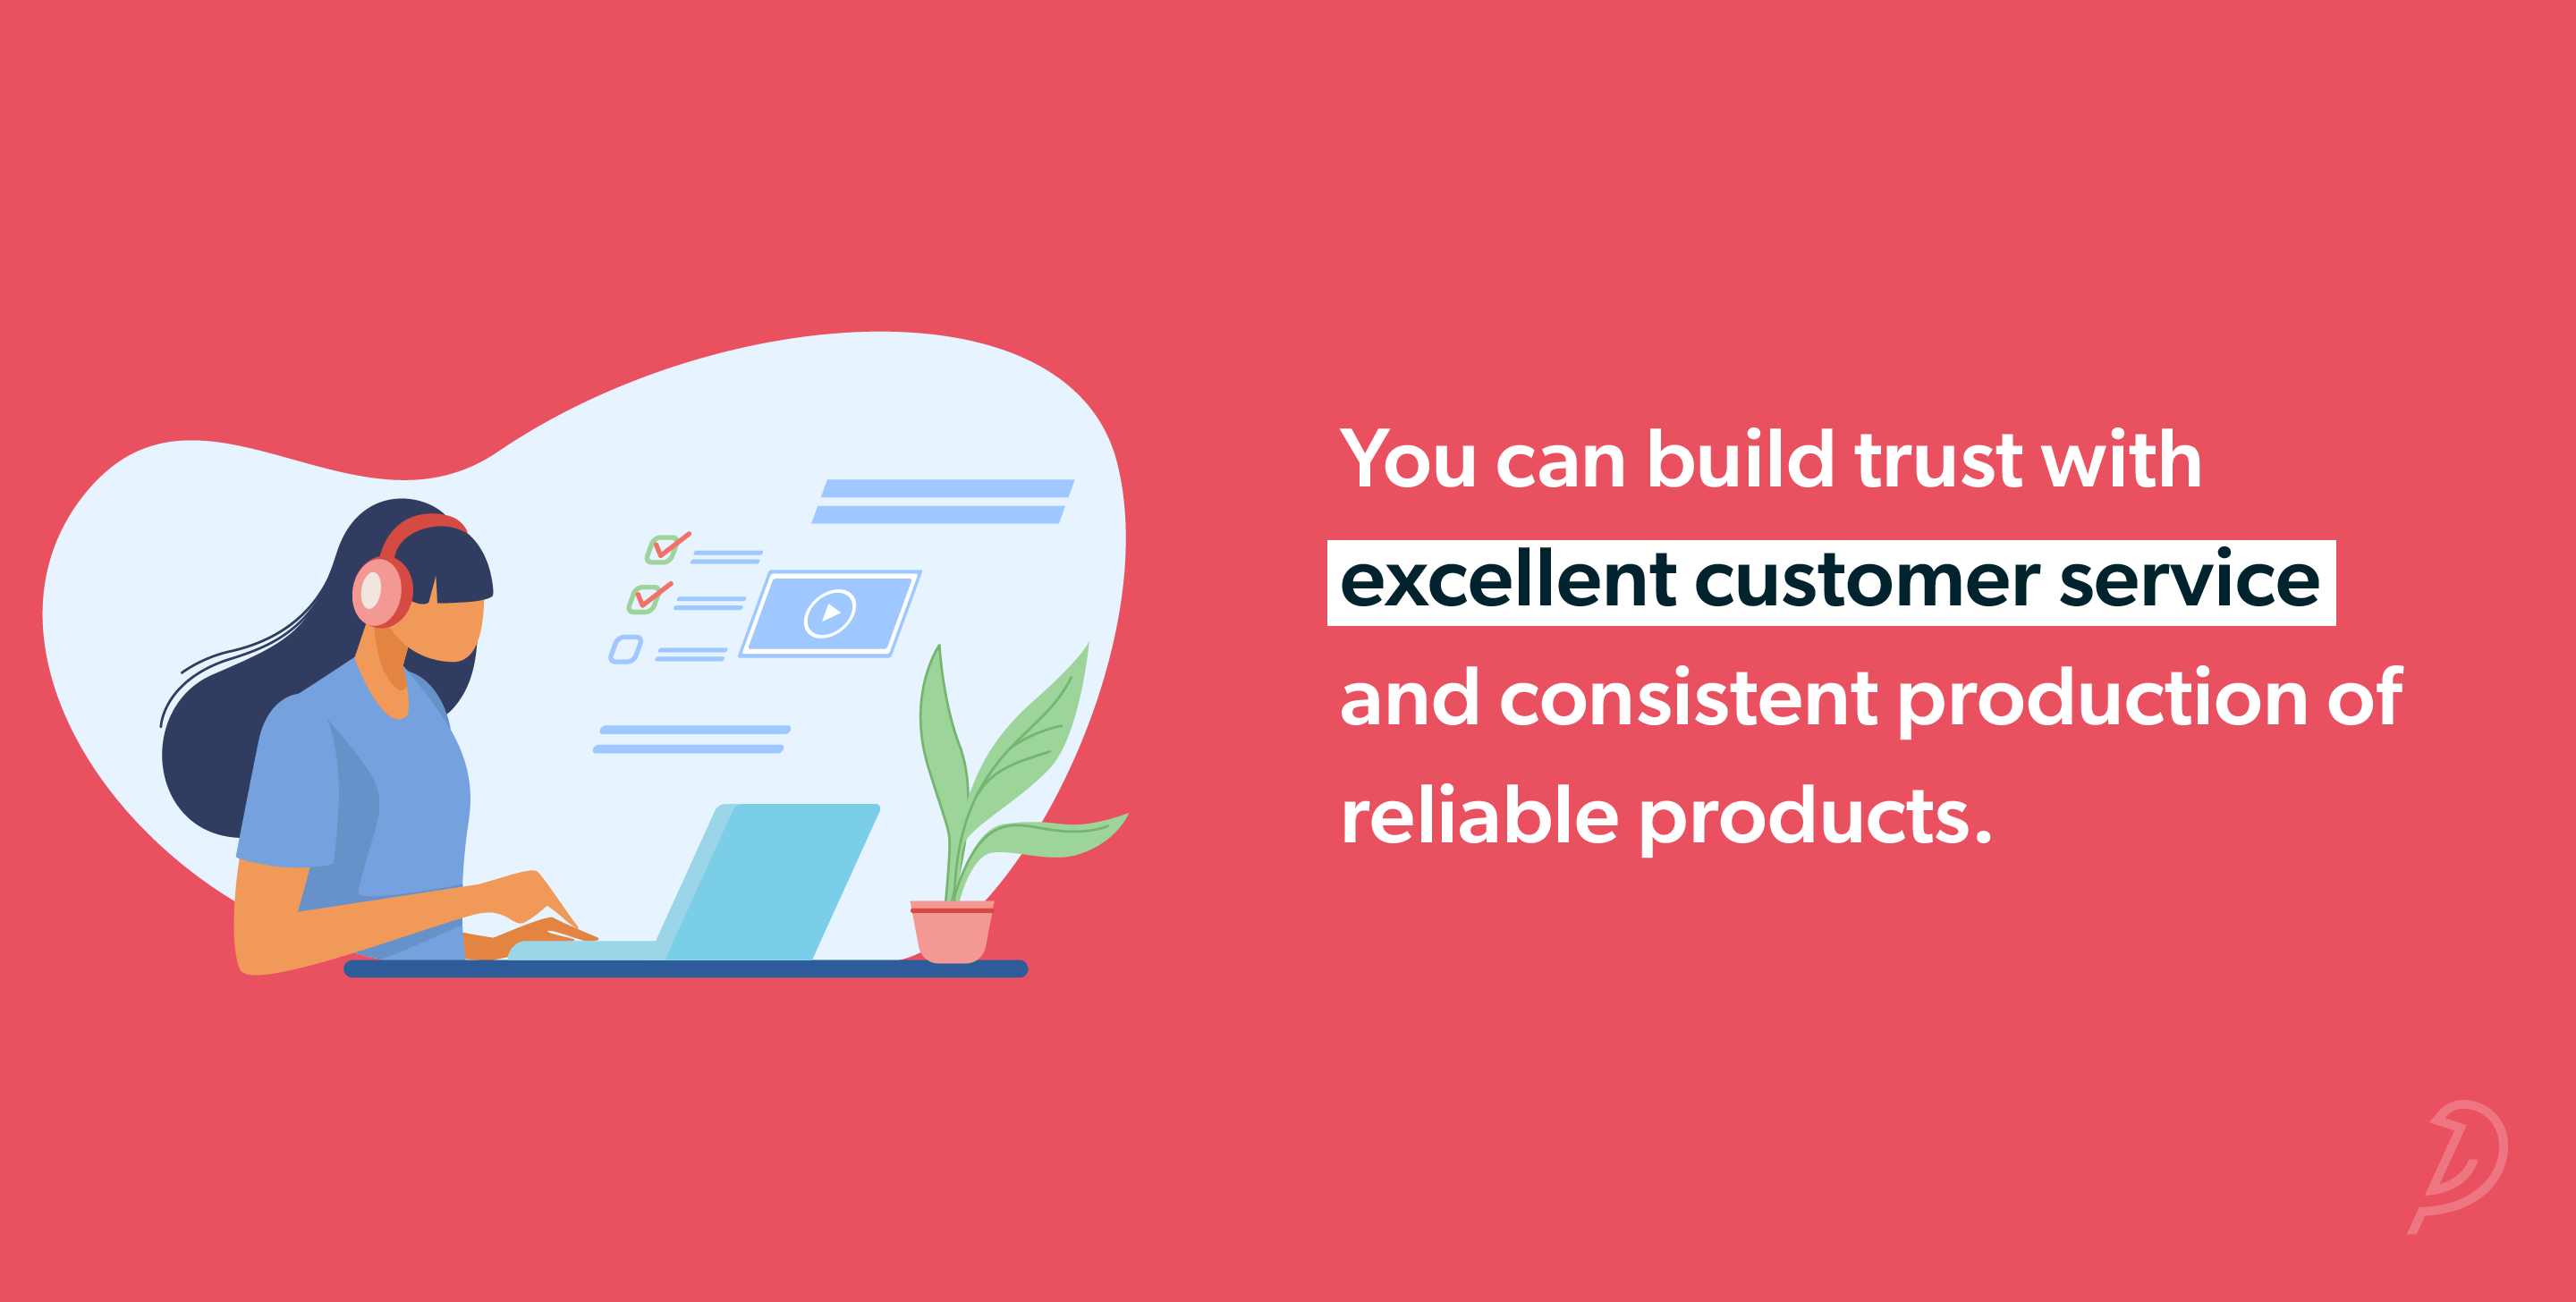 You can build trust with excellent customer service and consistent production of reliable products.